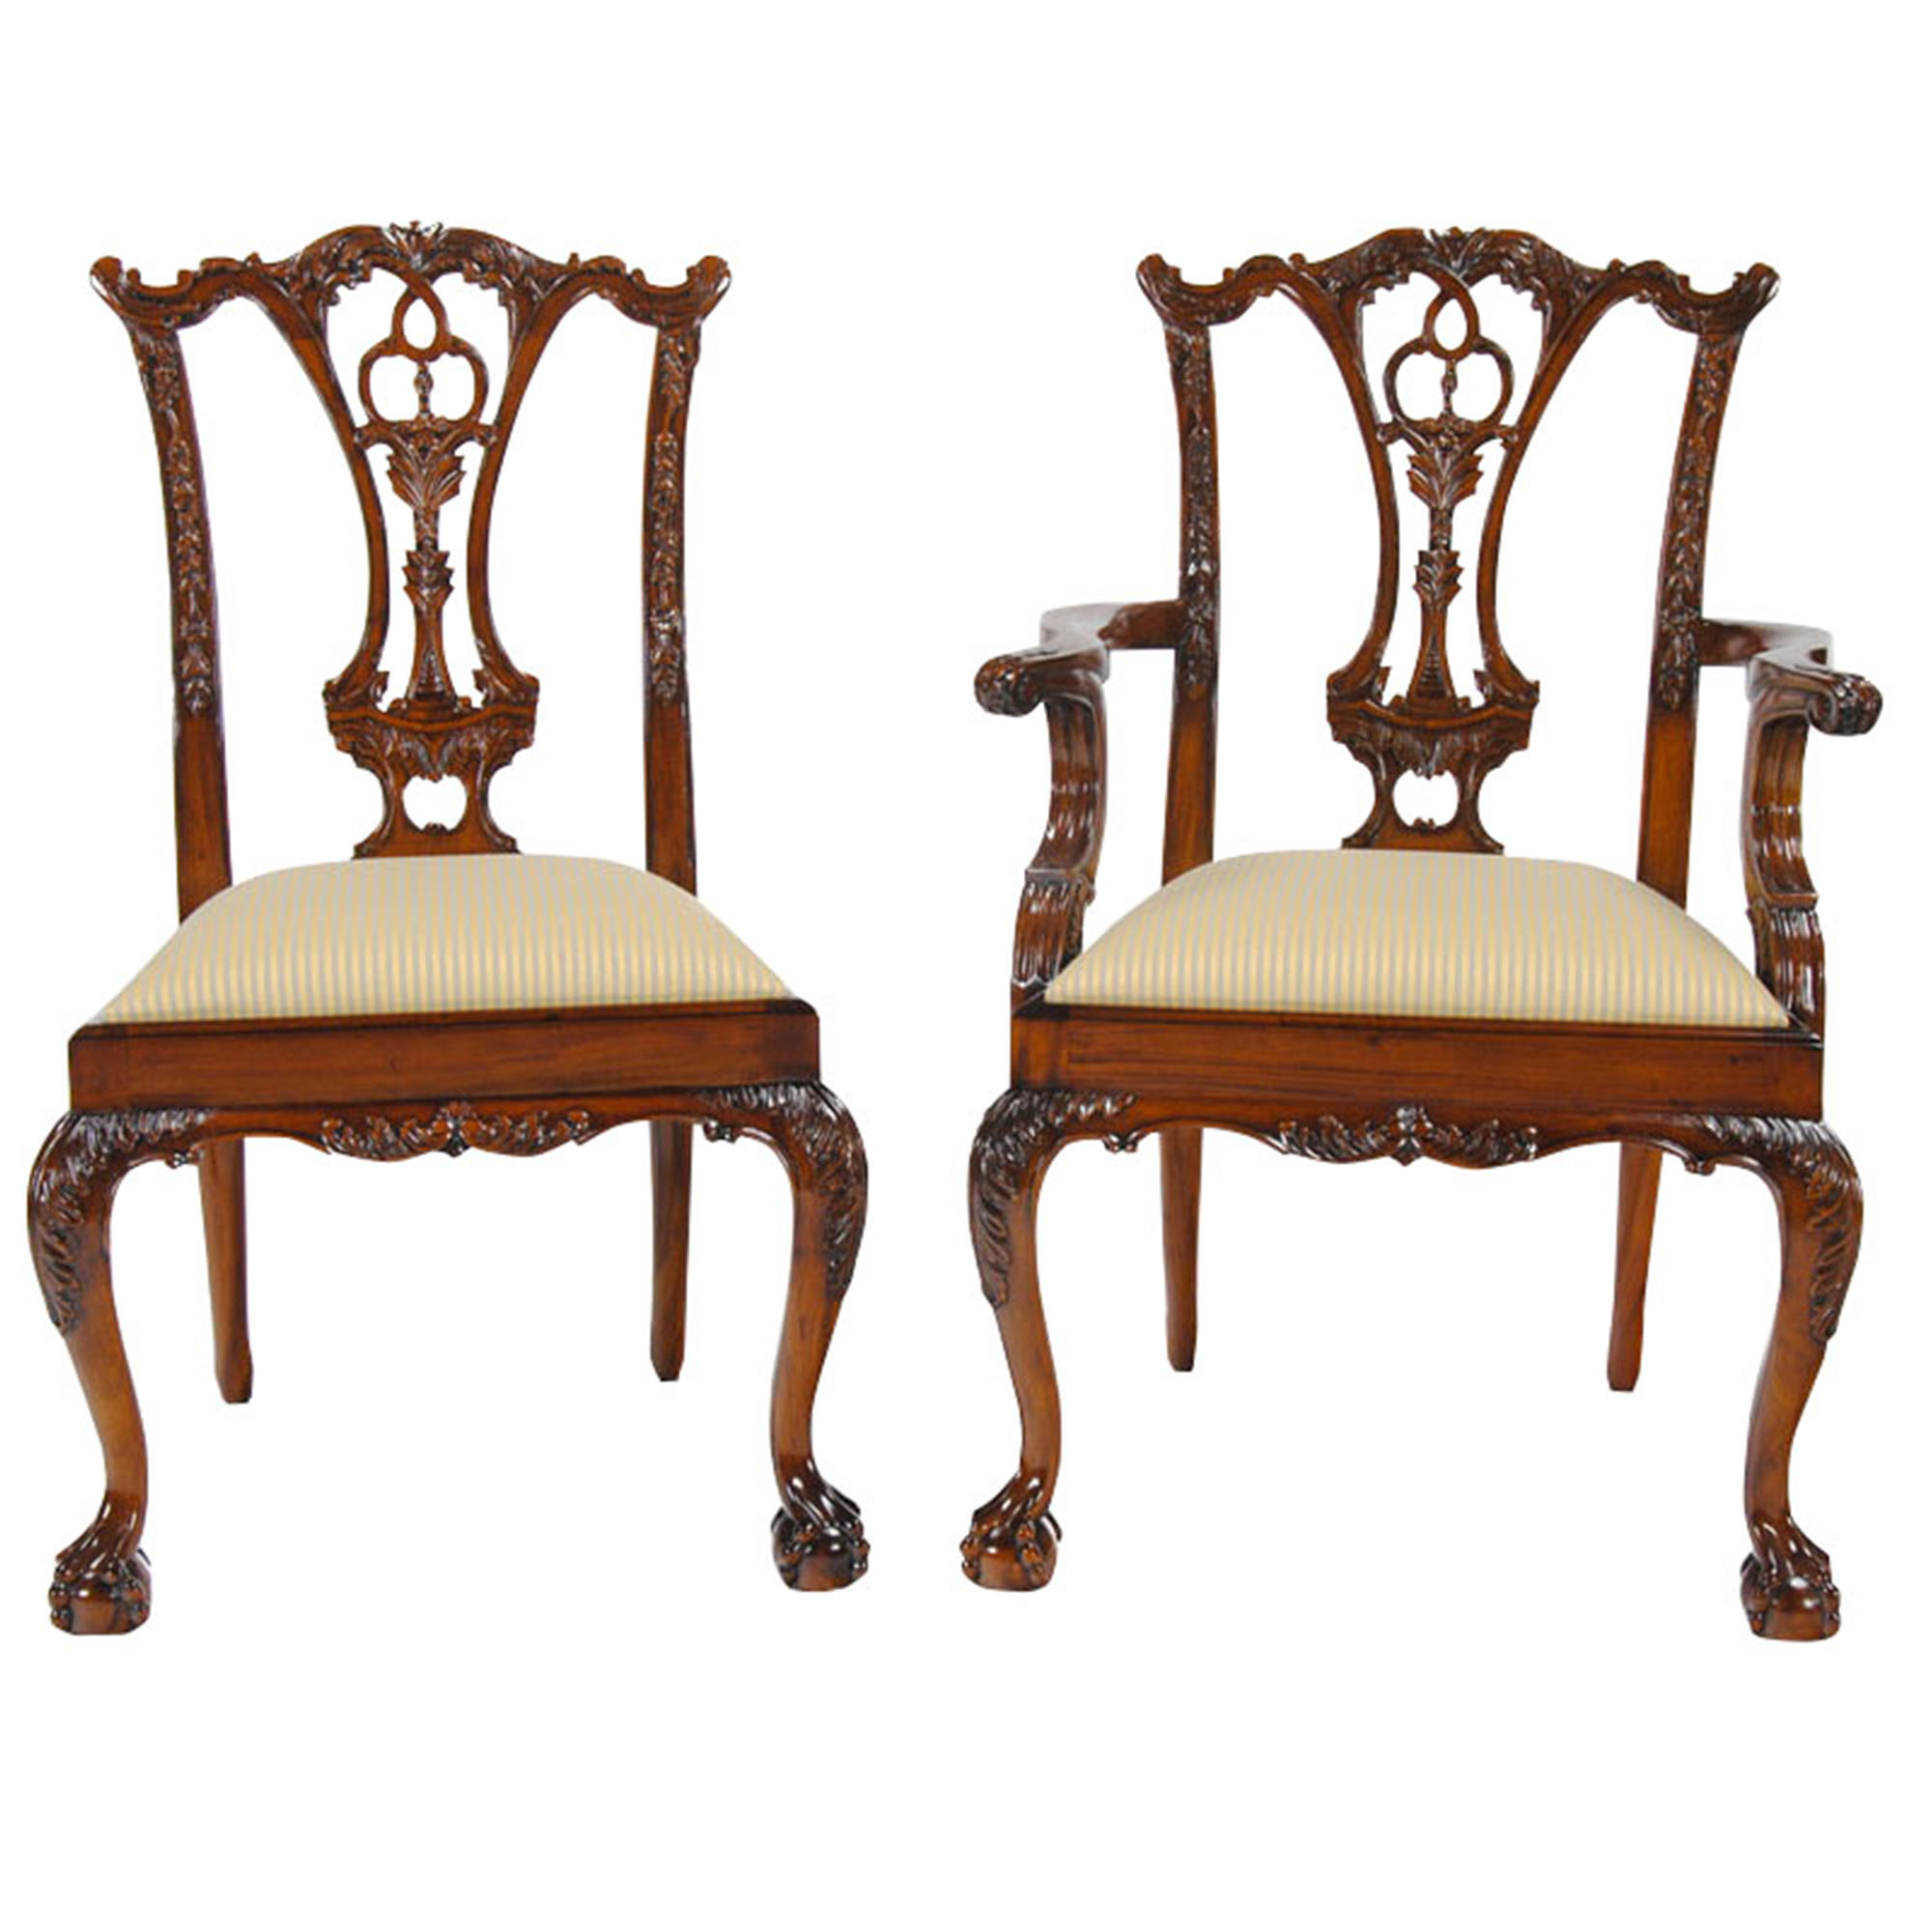 Standard Chippendale Chairs